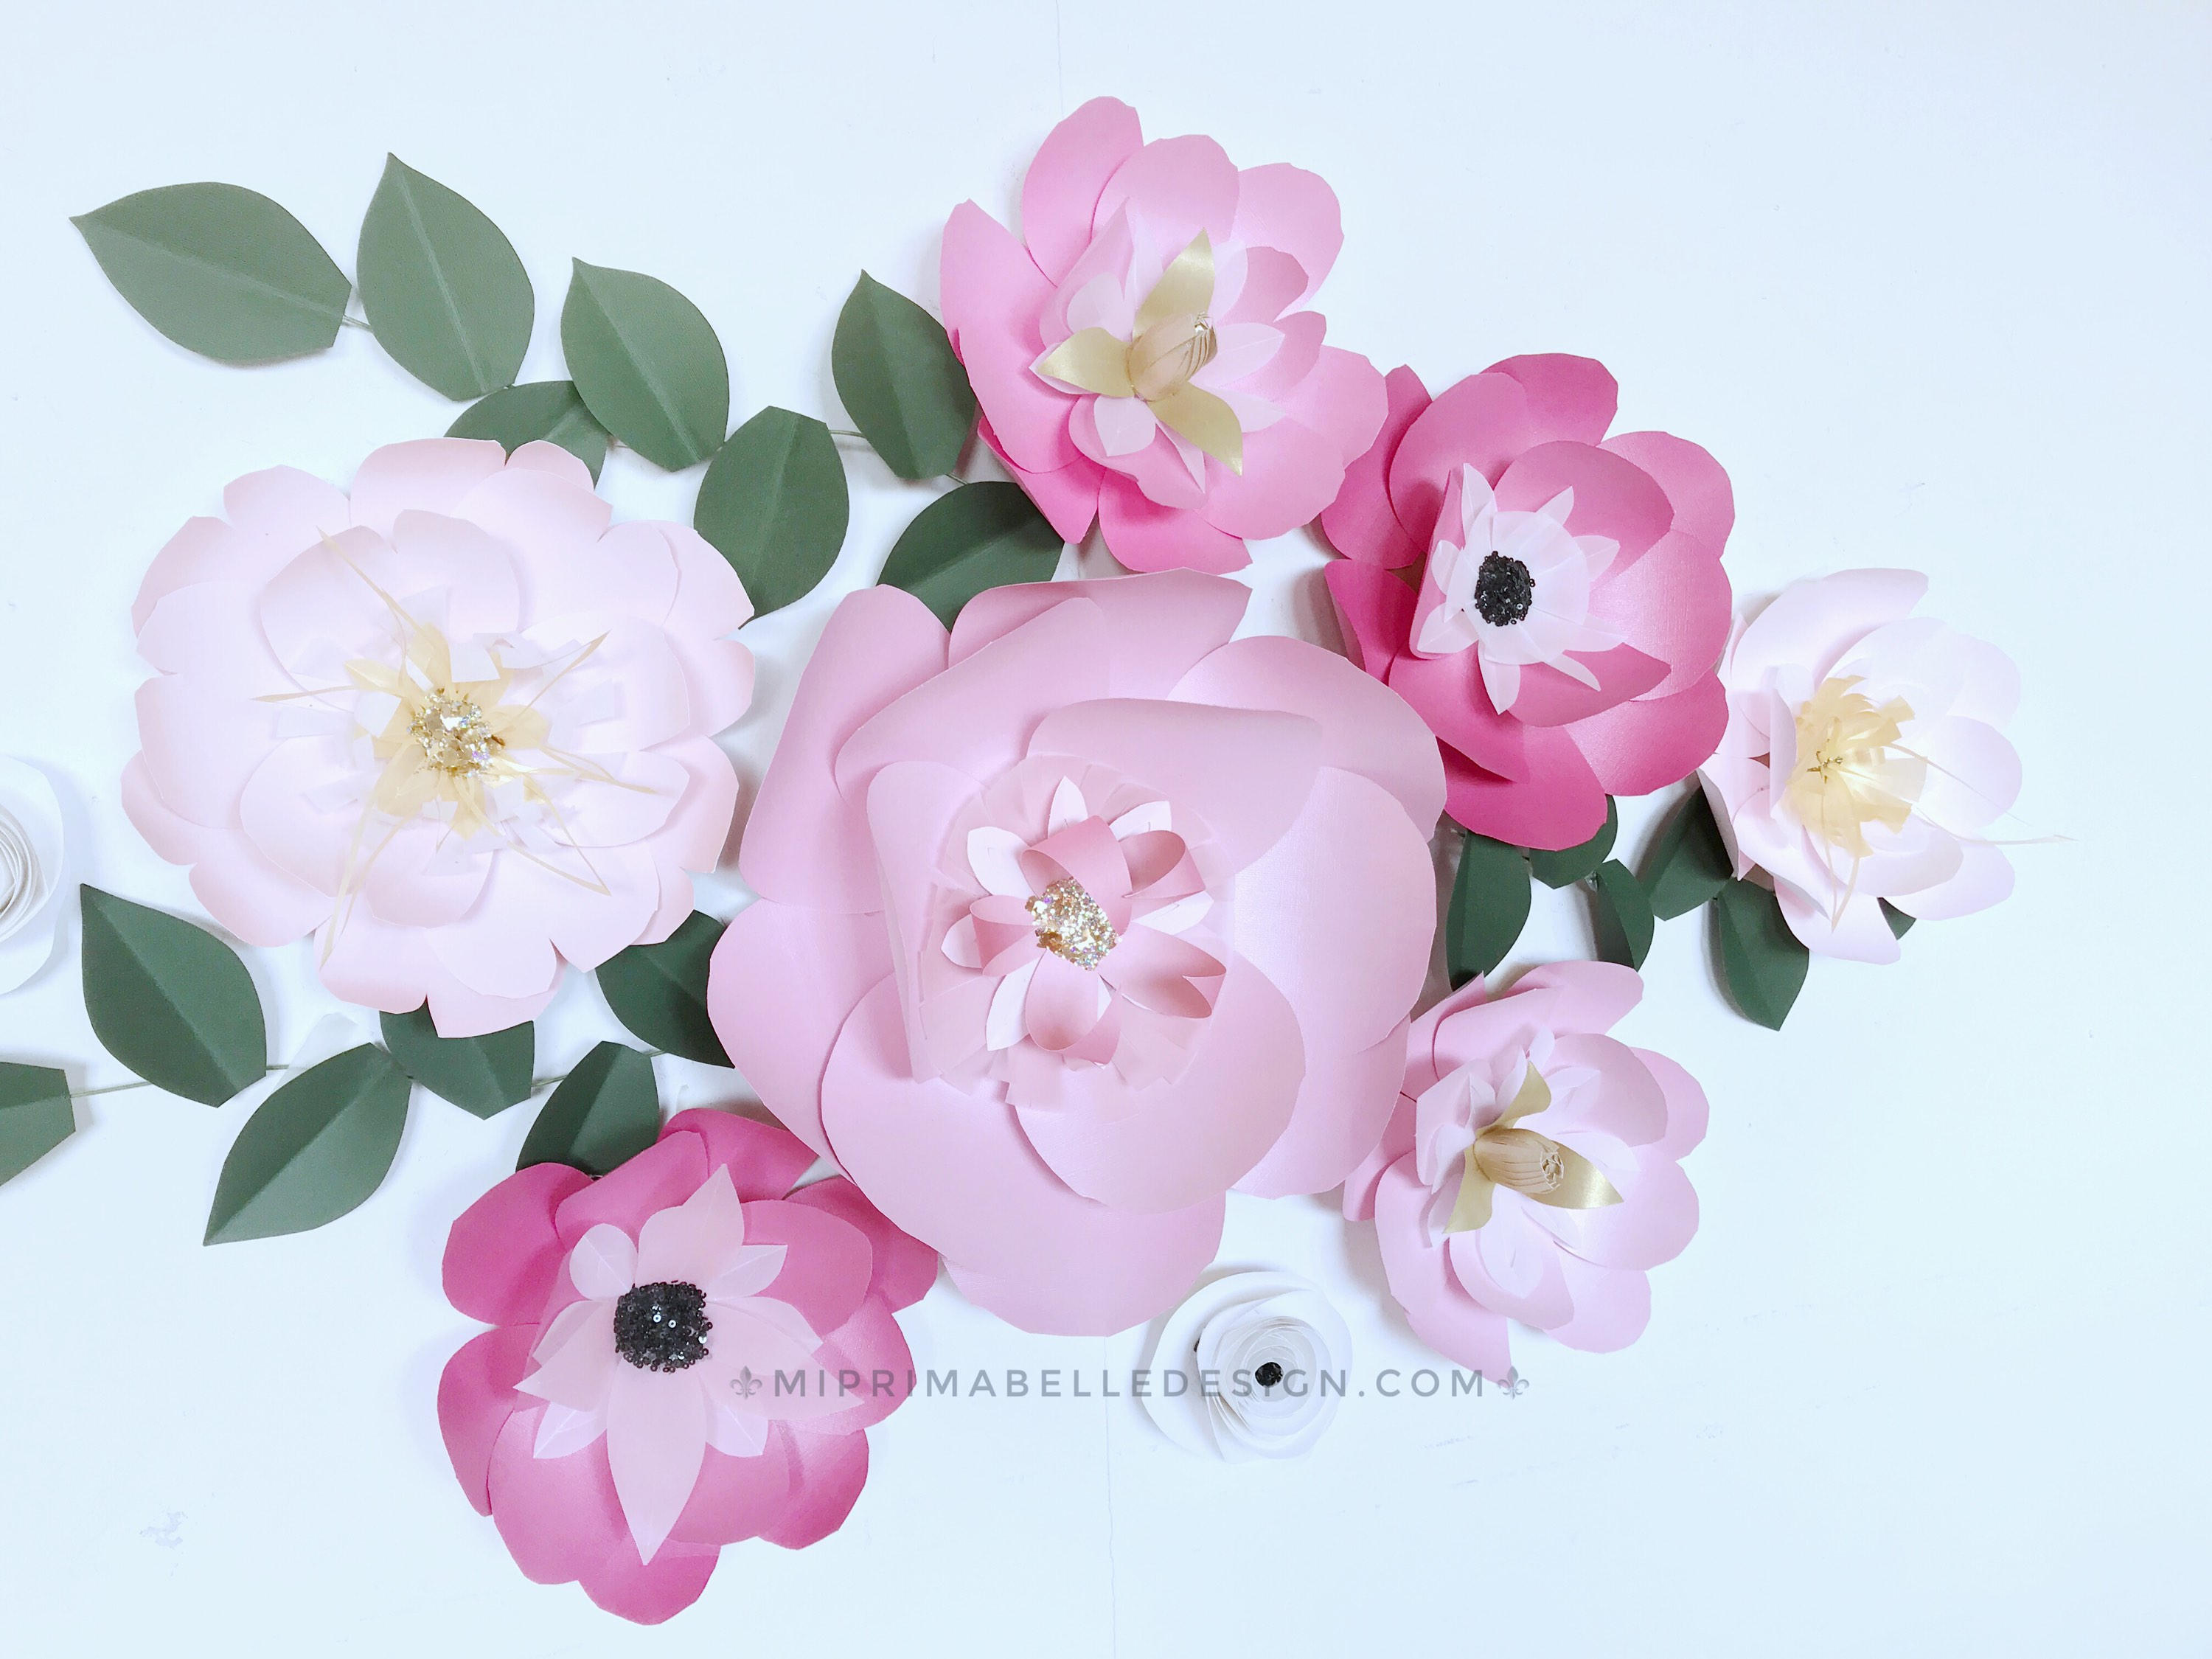 Paper flowers pink wall decor giant flowers wall backdrop bright paper flowers pink wall decor giant flowers wall backdrop bright pink nursery girl bedroom light pink decor paper flowers wall hanging pink mightylinksfo